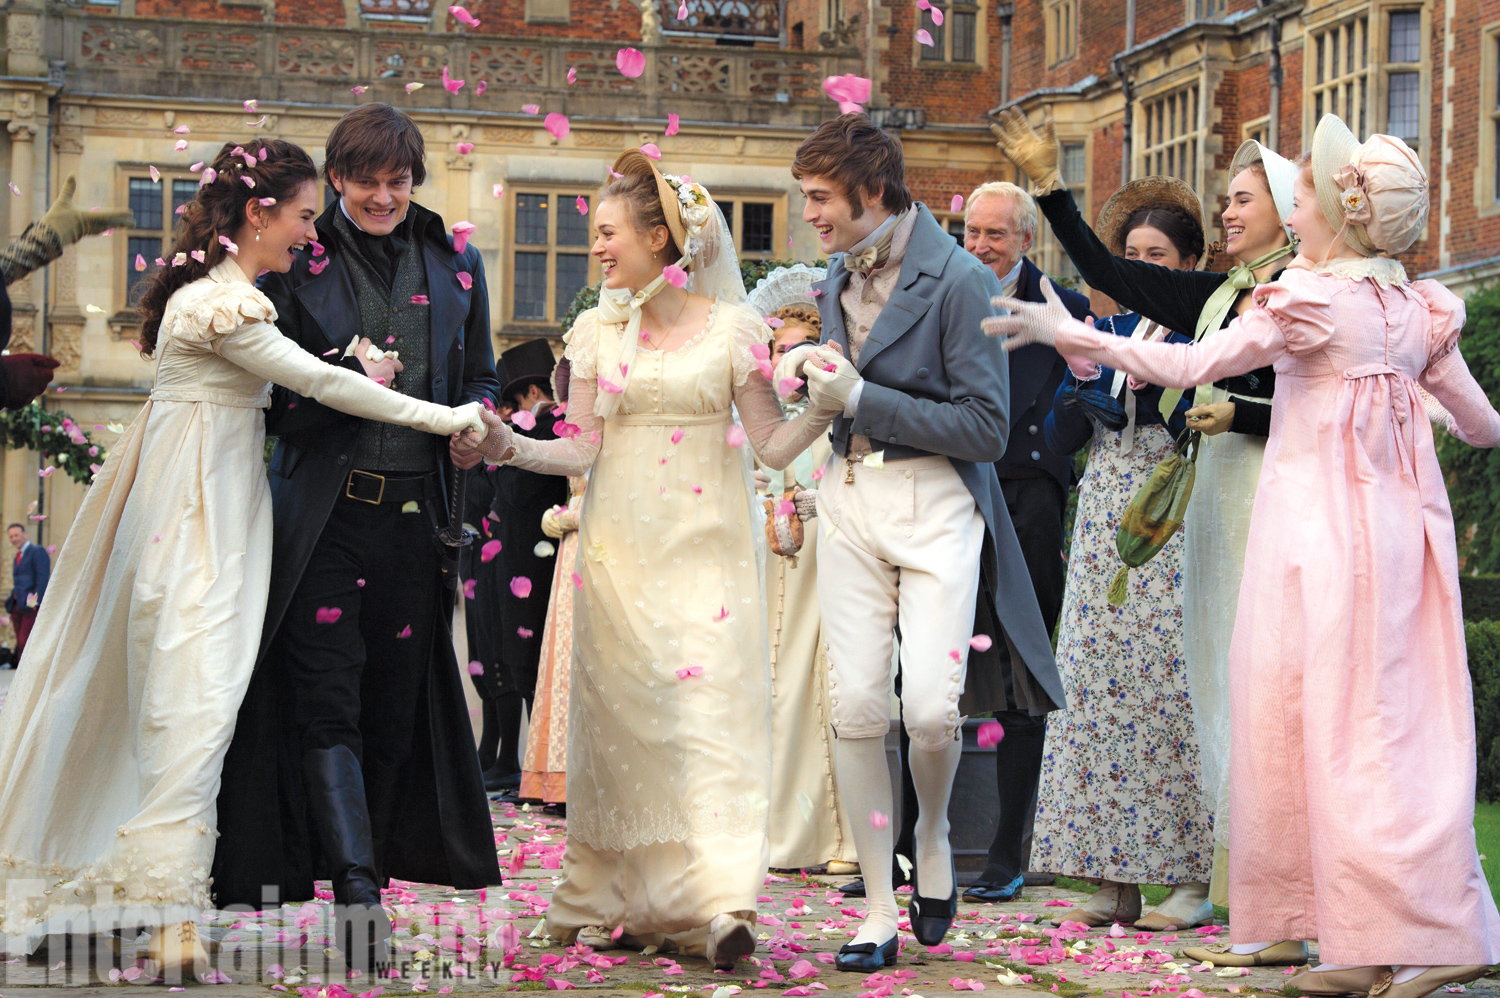 1017-1371-1372-ppz-pride-and-prejudice-and-zombies-2zz